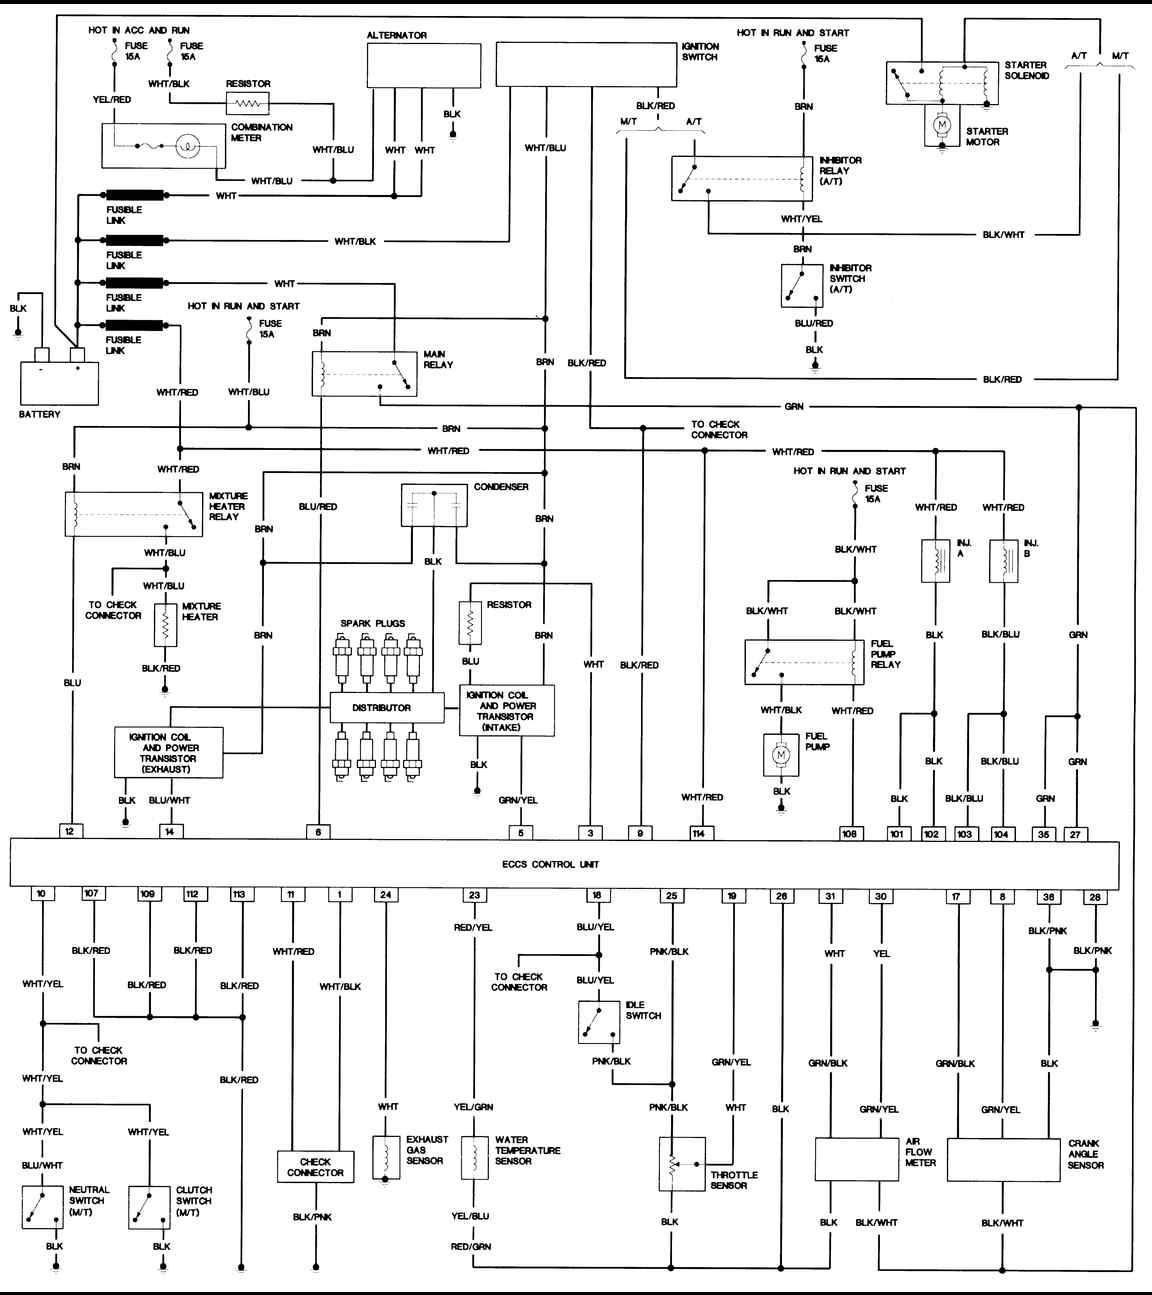 [DIAGRAM] Default Toyota Camry 2007 Radio Wire Wiring